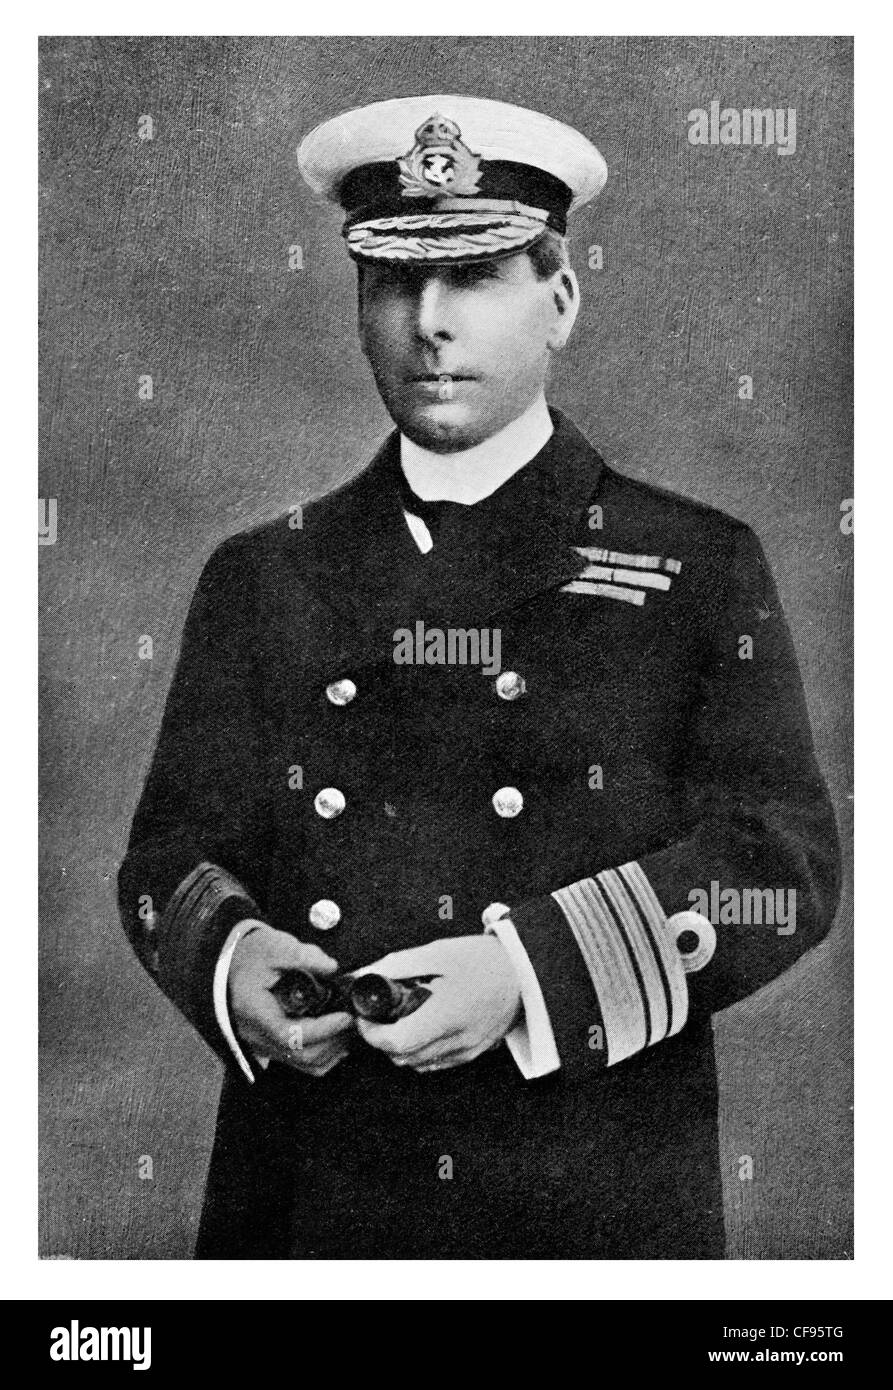 Vice Admiral Sir Reginald Hugh Spencer Bacon, KCB, KCVO, DSO Royal Navy cleverest officer in the Navy - Stock Image